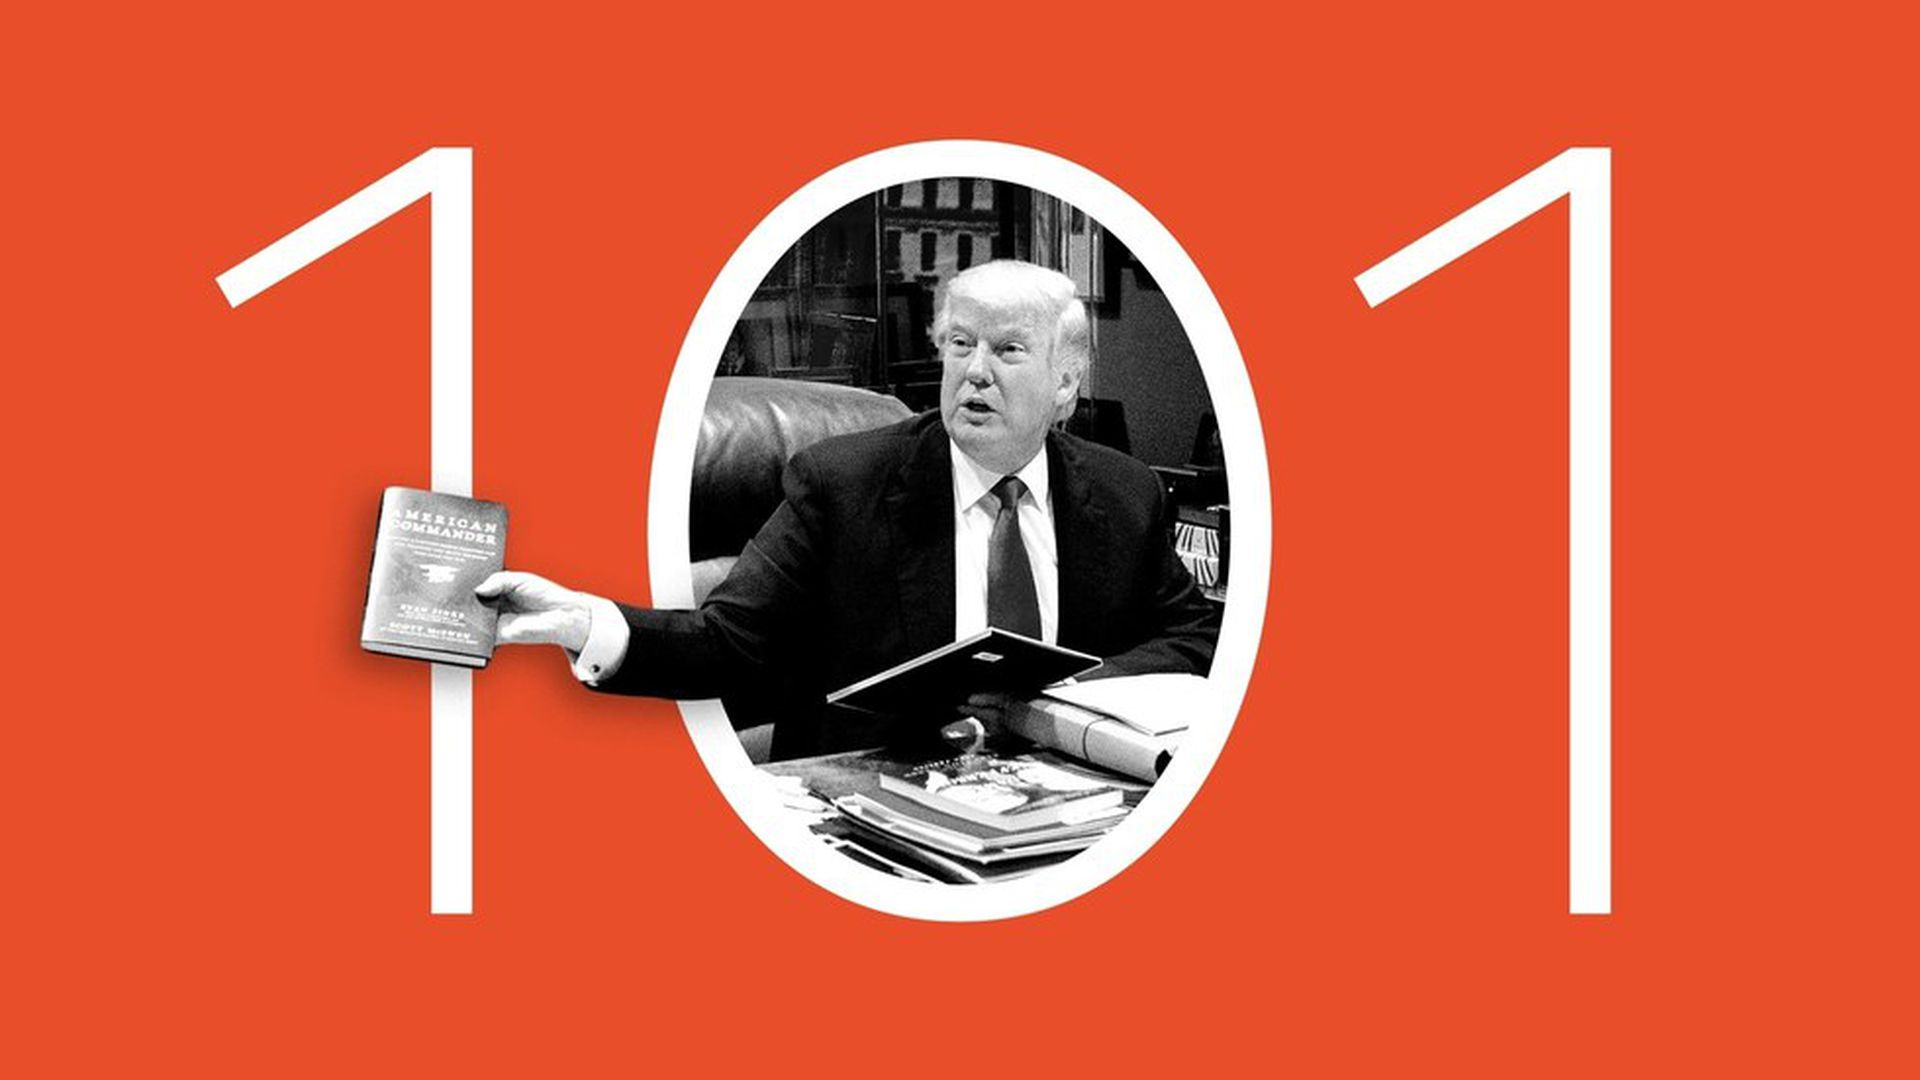 Trump 101: What he reads and watches